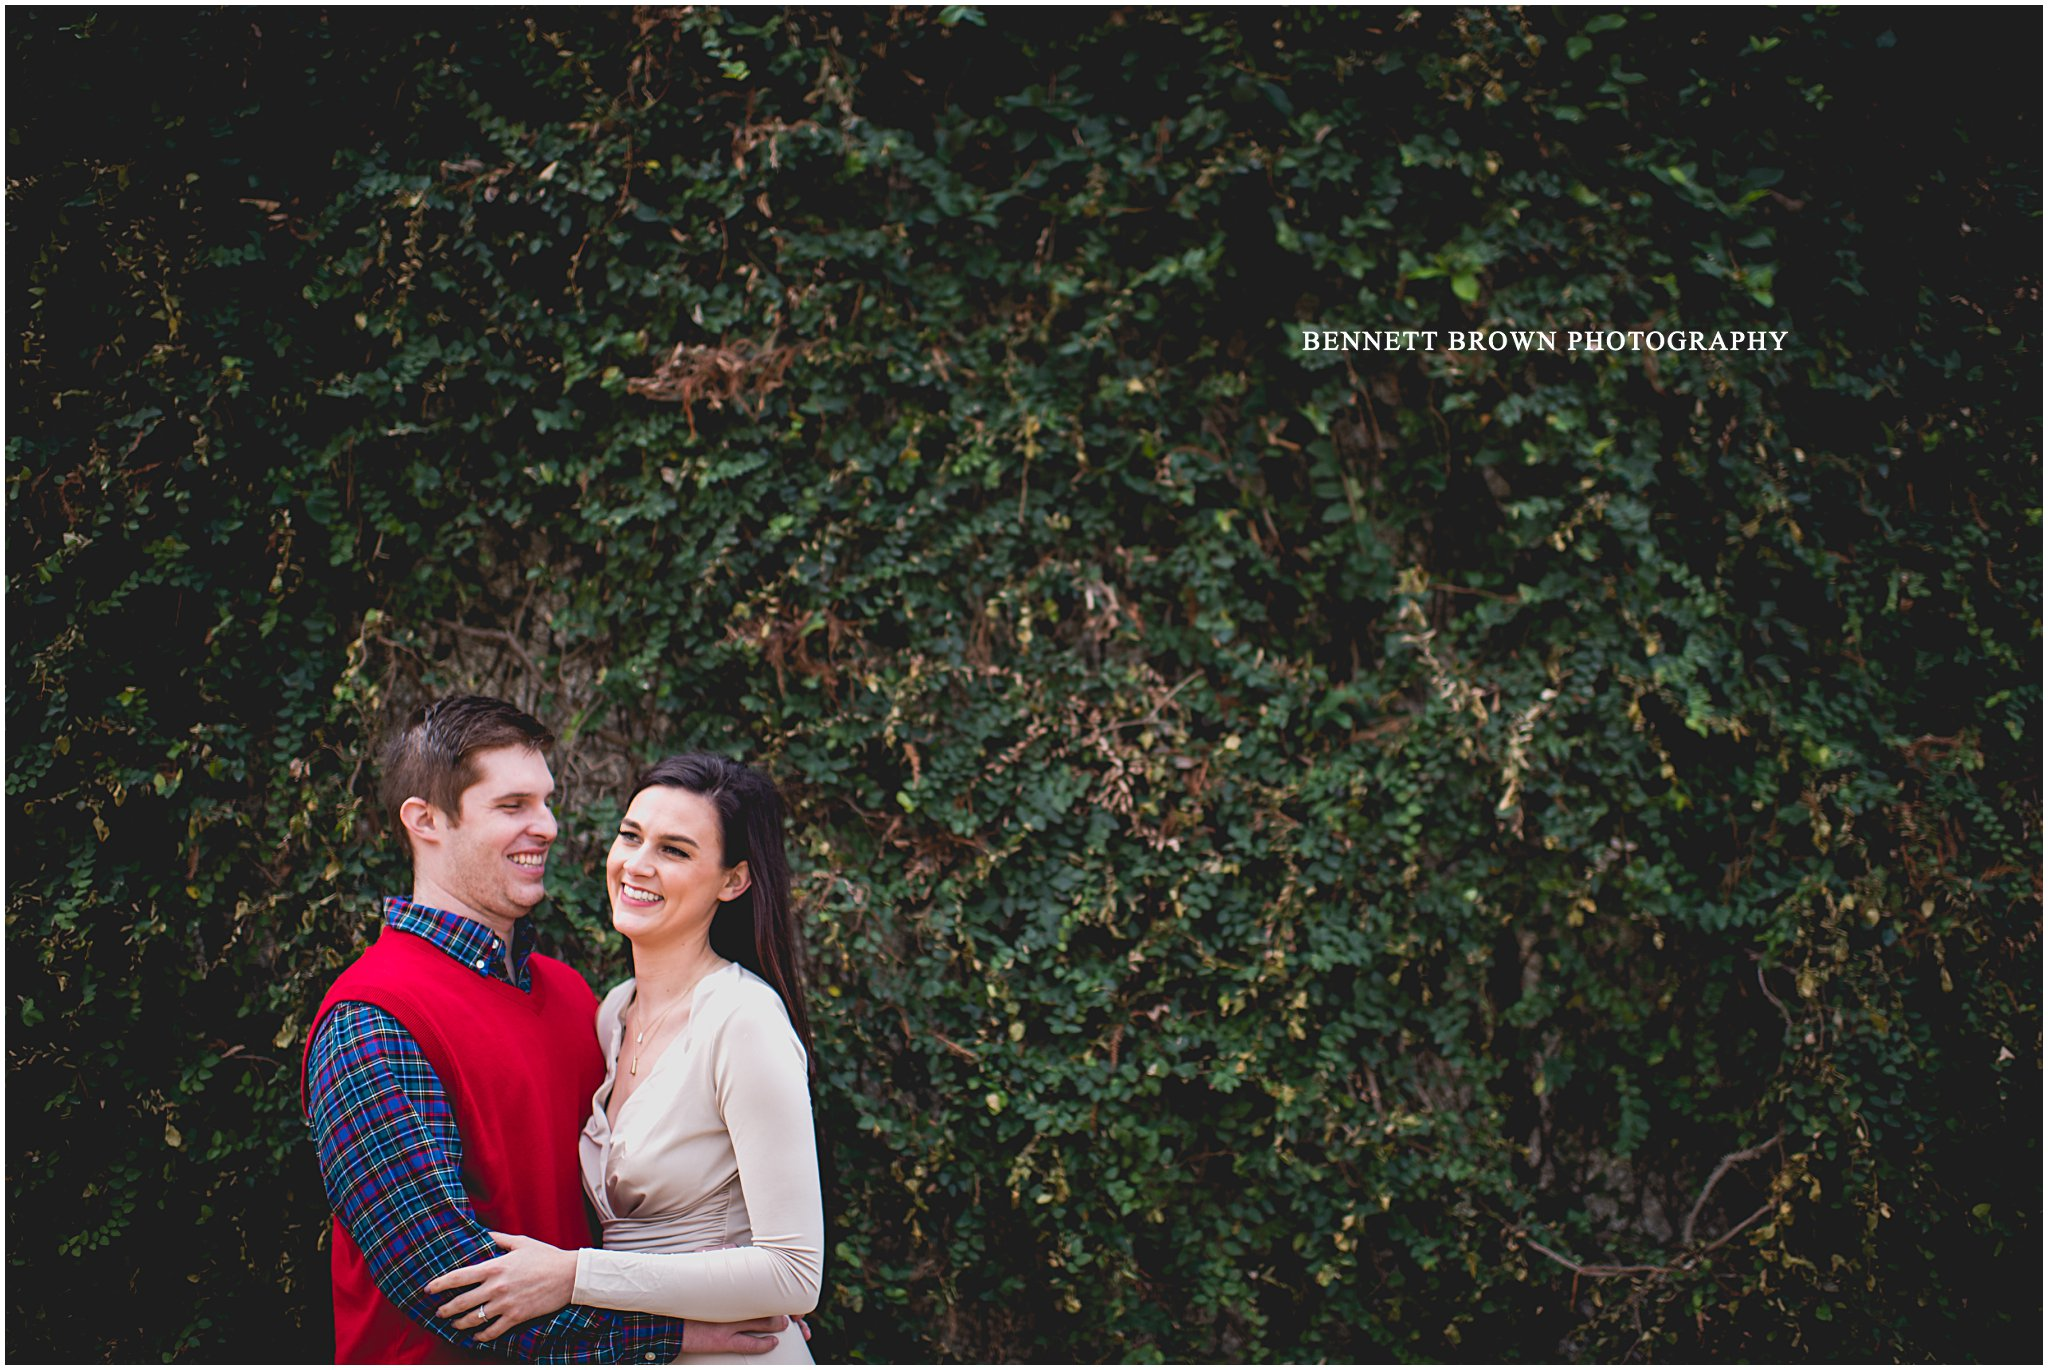 Ivy outdoor session Bennett Brown Photography engagement session wedding photography bride groom